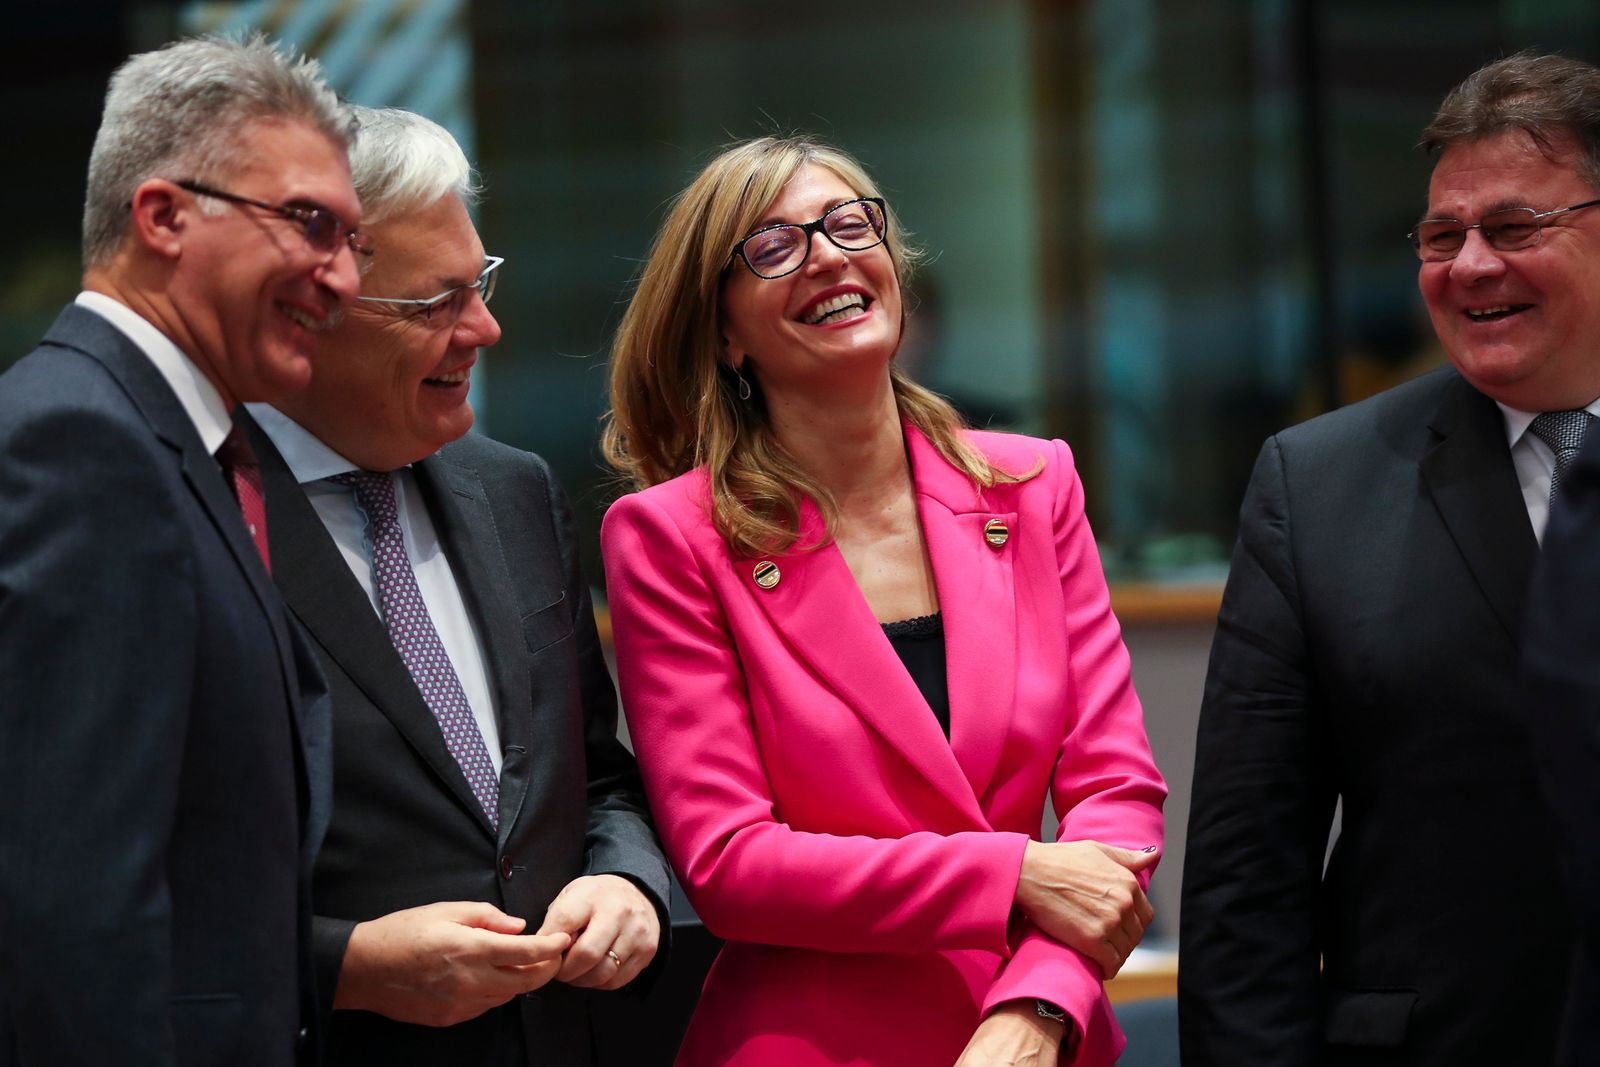 Bulgarian Foreign Minister Ekaterina Zaharieva, second right, talks to Malta's Foreign Minister Carmelo Abela, left, Lithuanian Foreign Minister Linas Linkevicius, right, and Belgium Foreign Minister Didier Reynders during an European Foreign Affairs Ministers meeting at the Europa building in Brussels, Monday, Nov. 11, 2019. (AP Photo/Francisco Seco)